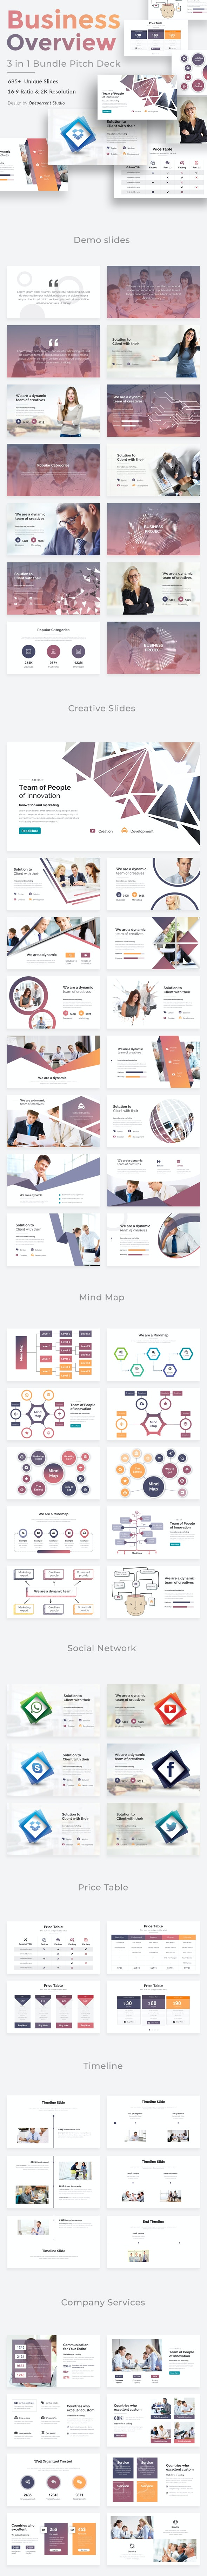 Business Overview 3 in 1 Pitch Deck Bundle Keynote Template - Creative Keynote Templates